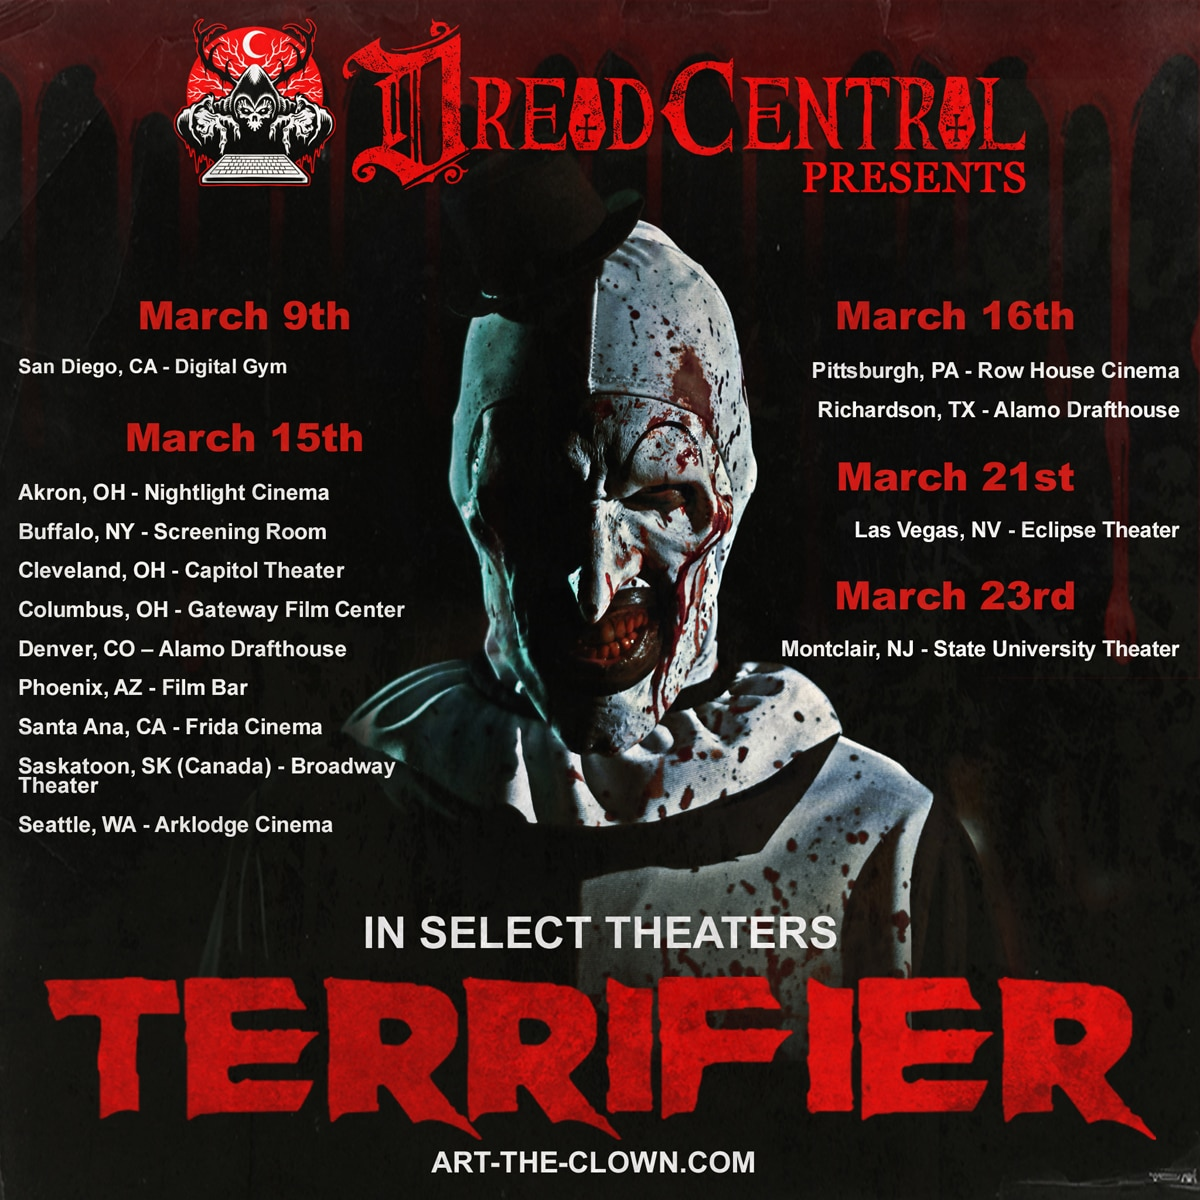 Terrifier 2048x2048 Insta - Terrifier Review Round-Up: The Critics Are SCREAMING!